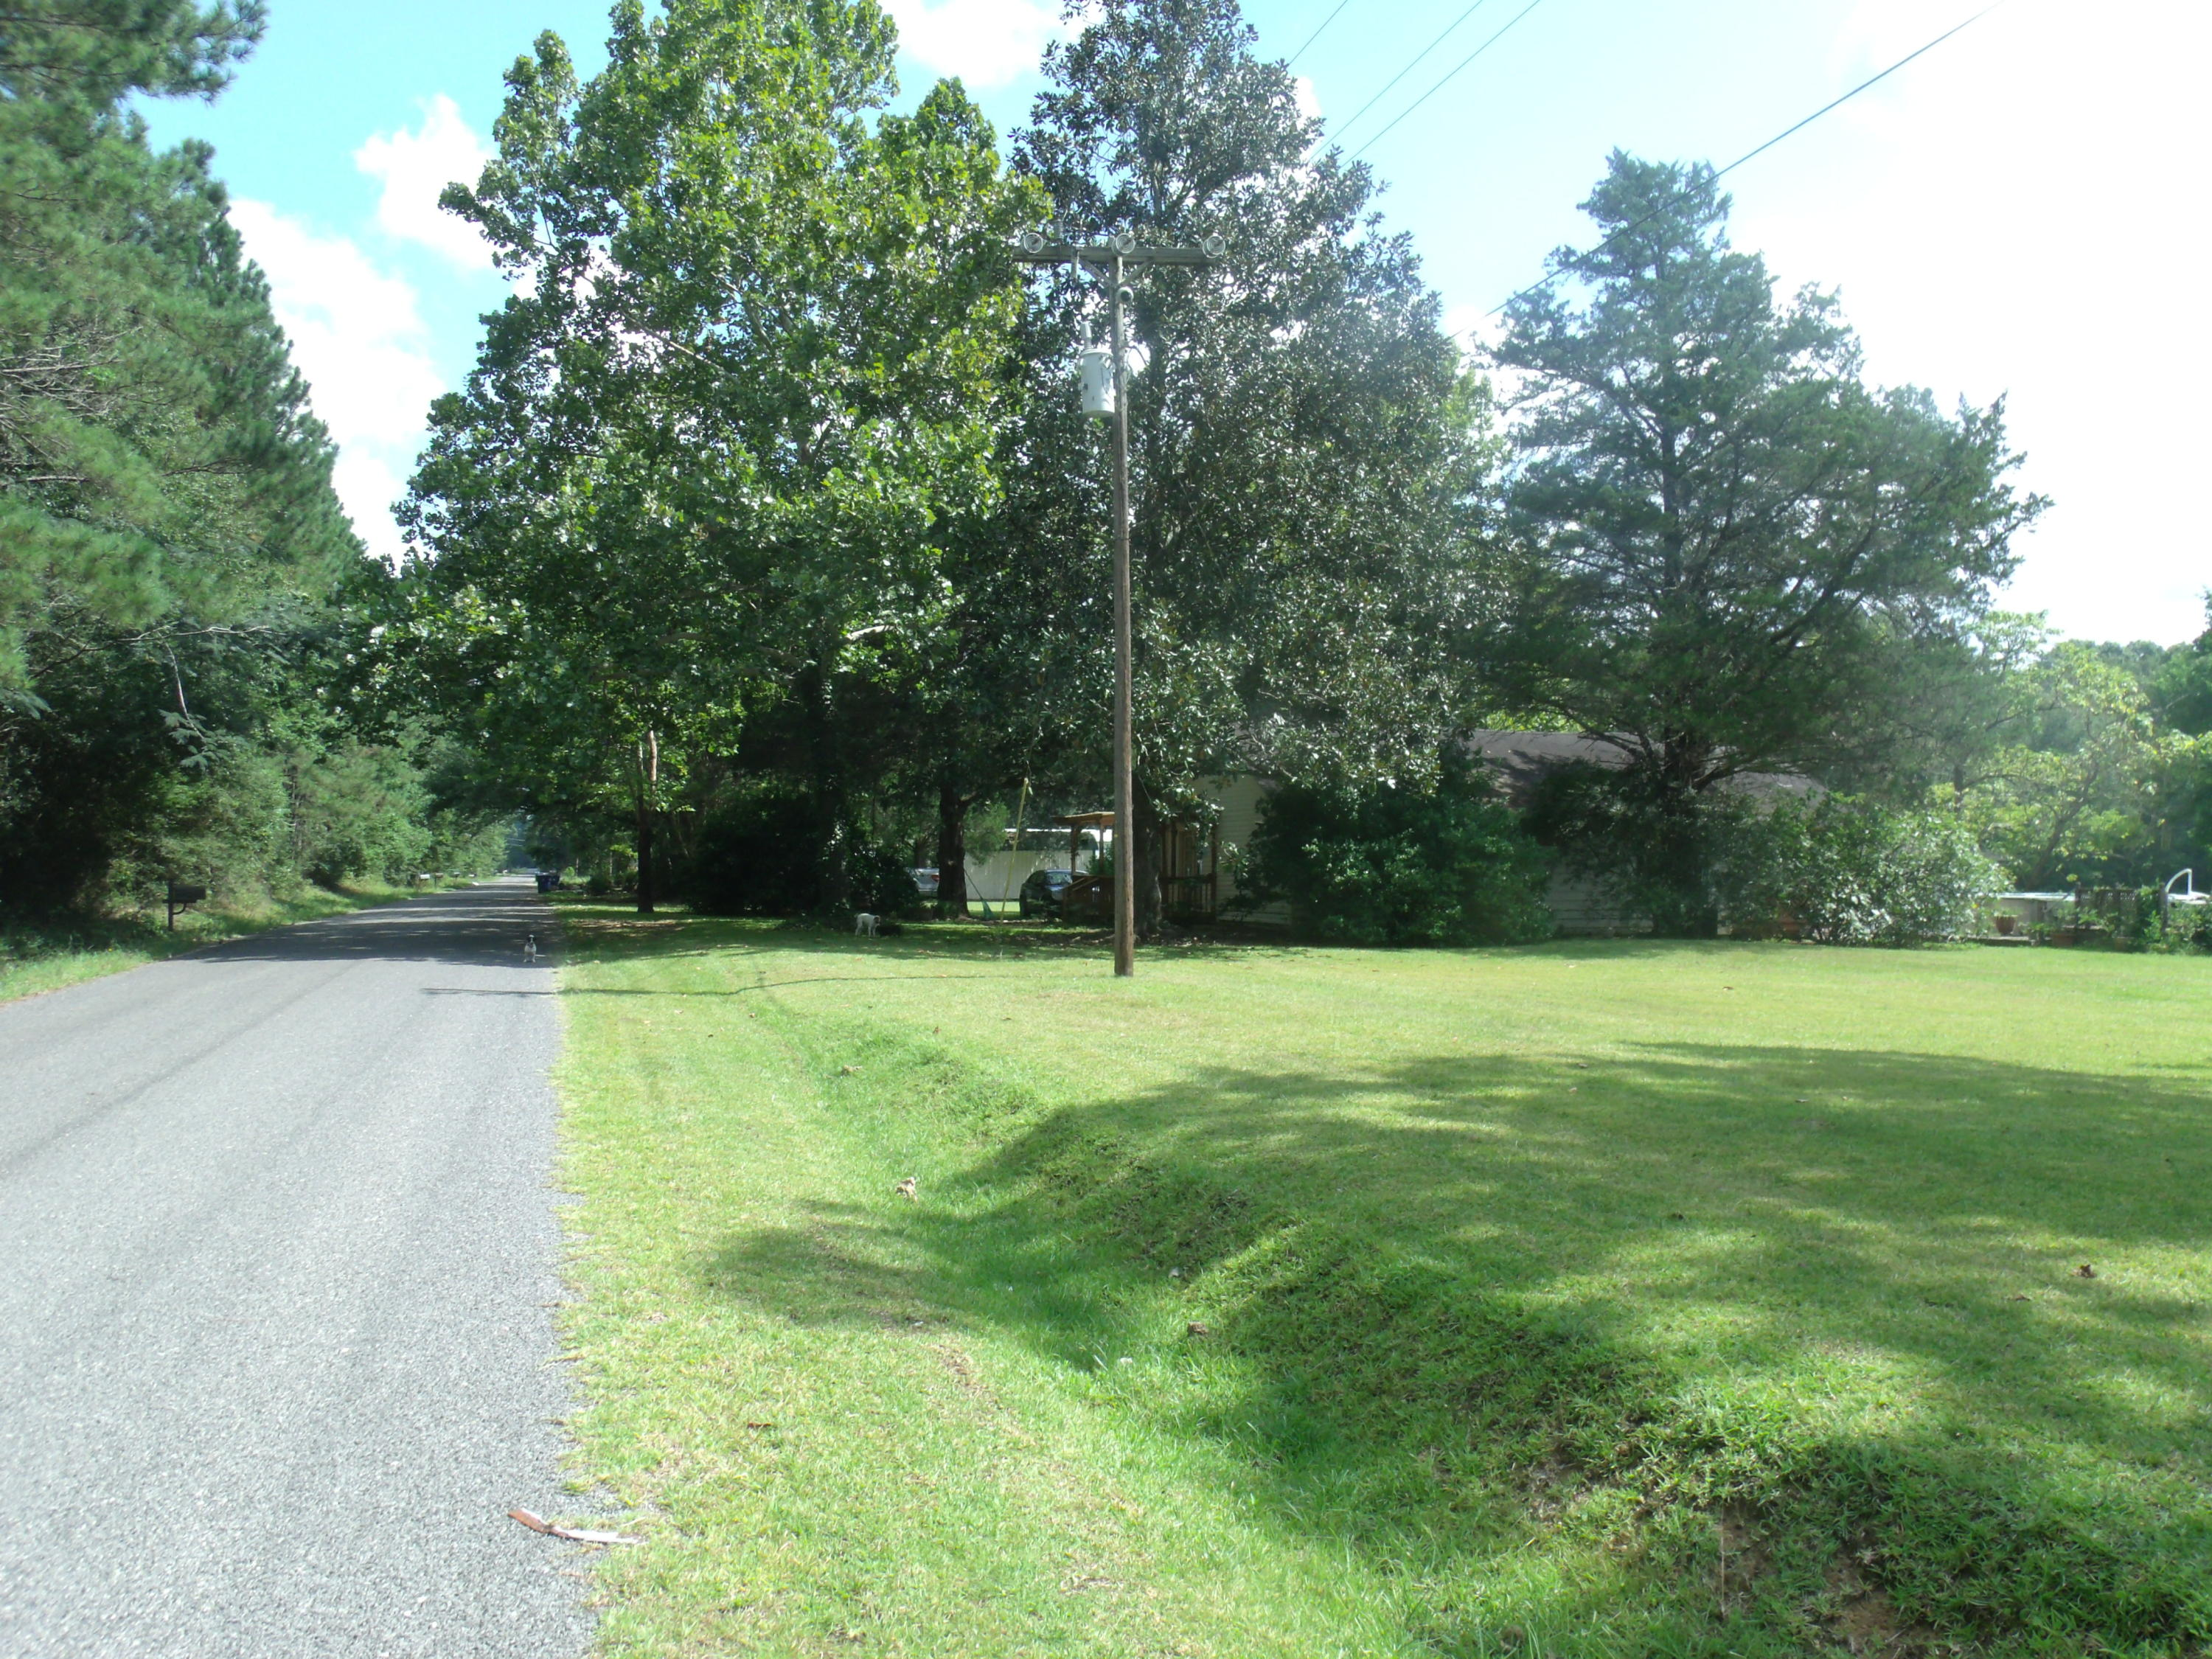 DeRidder home for sale, 546 Hanna St, DeRidder LA - $118,500